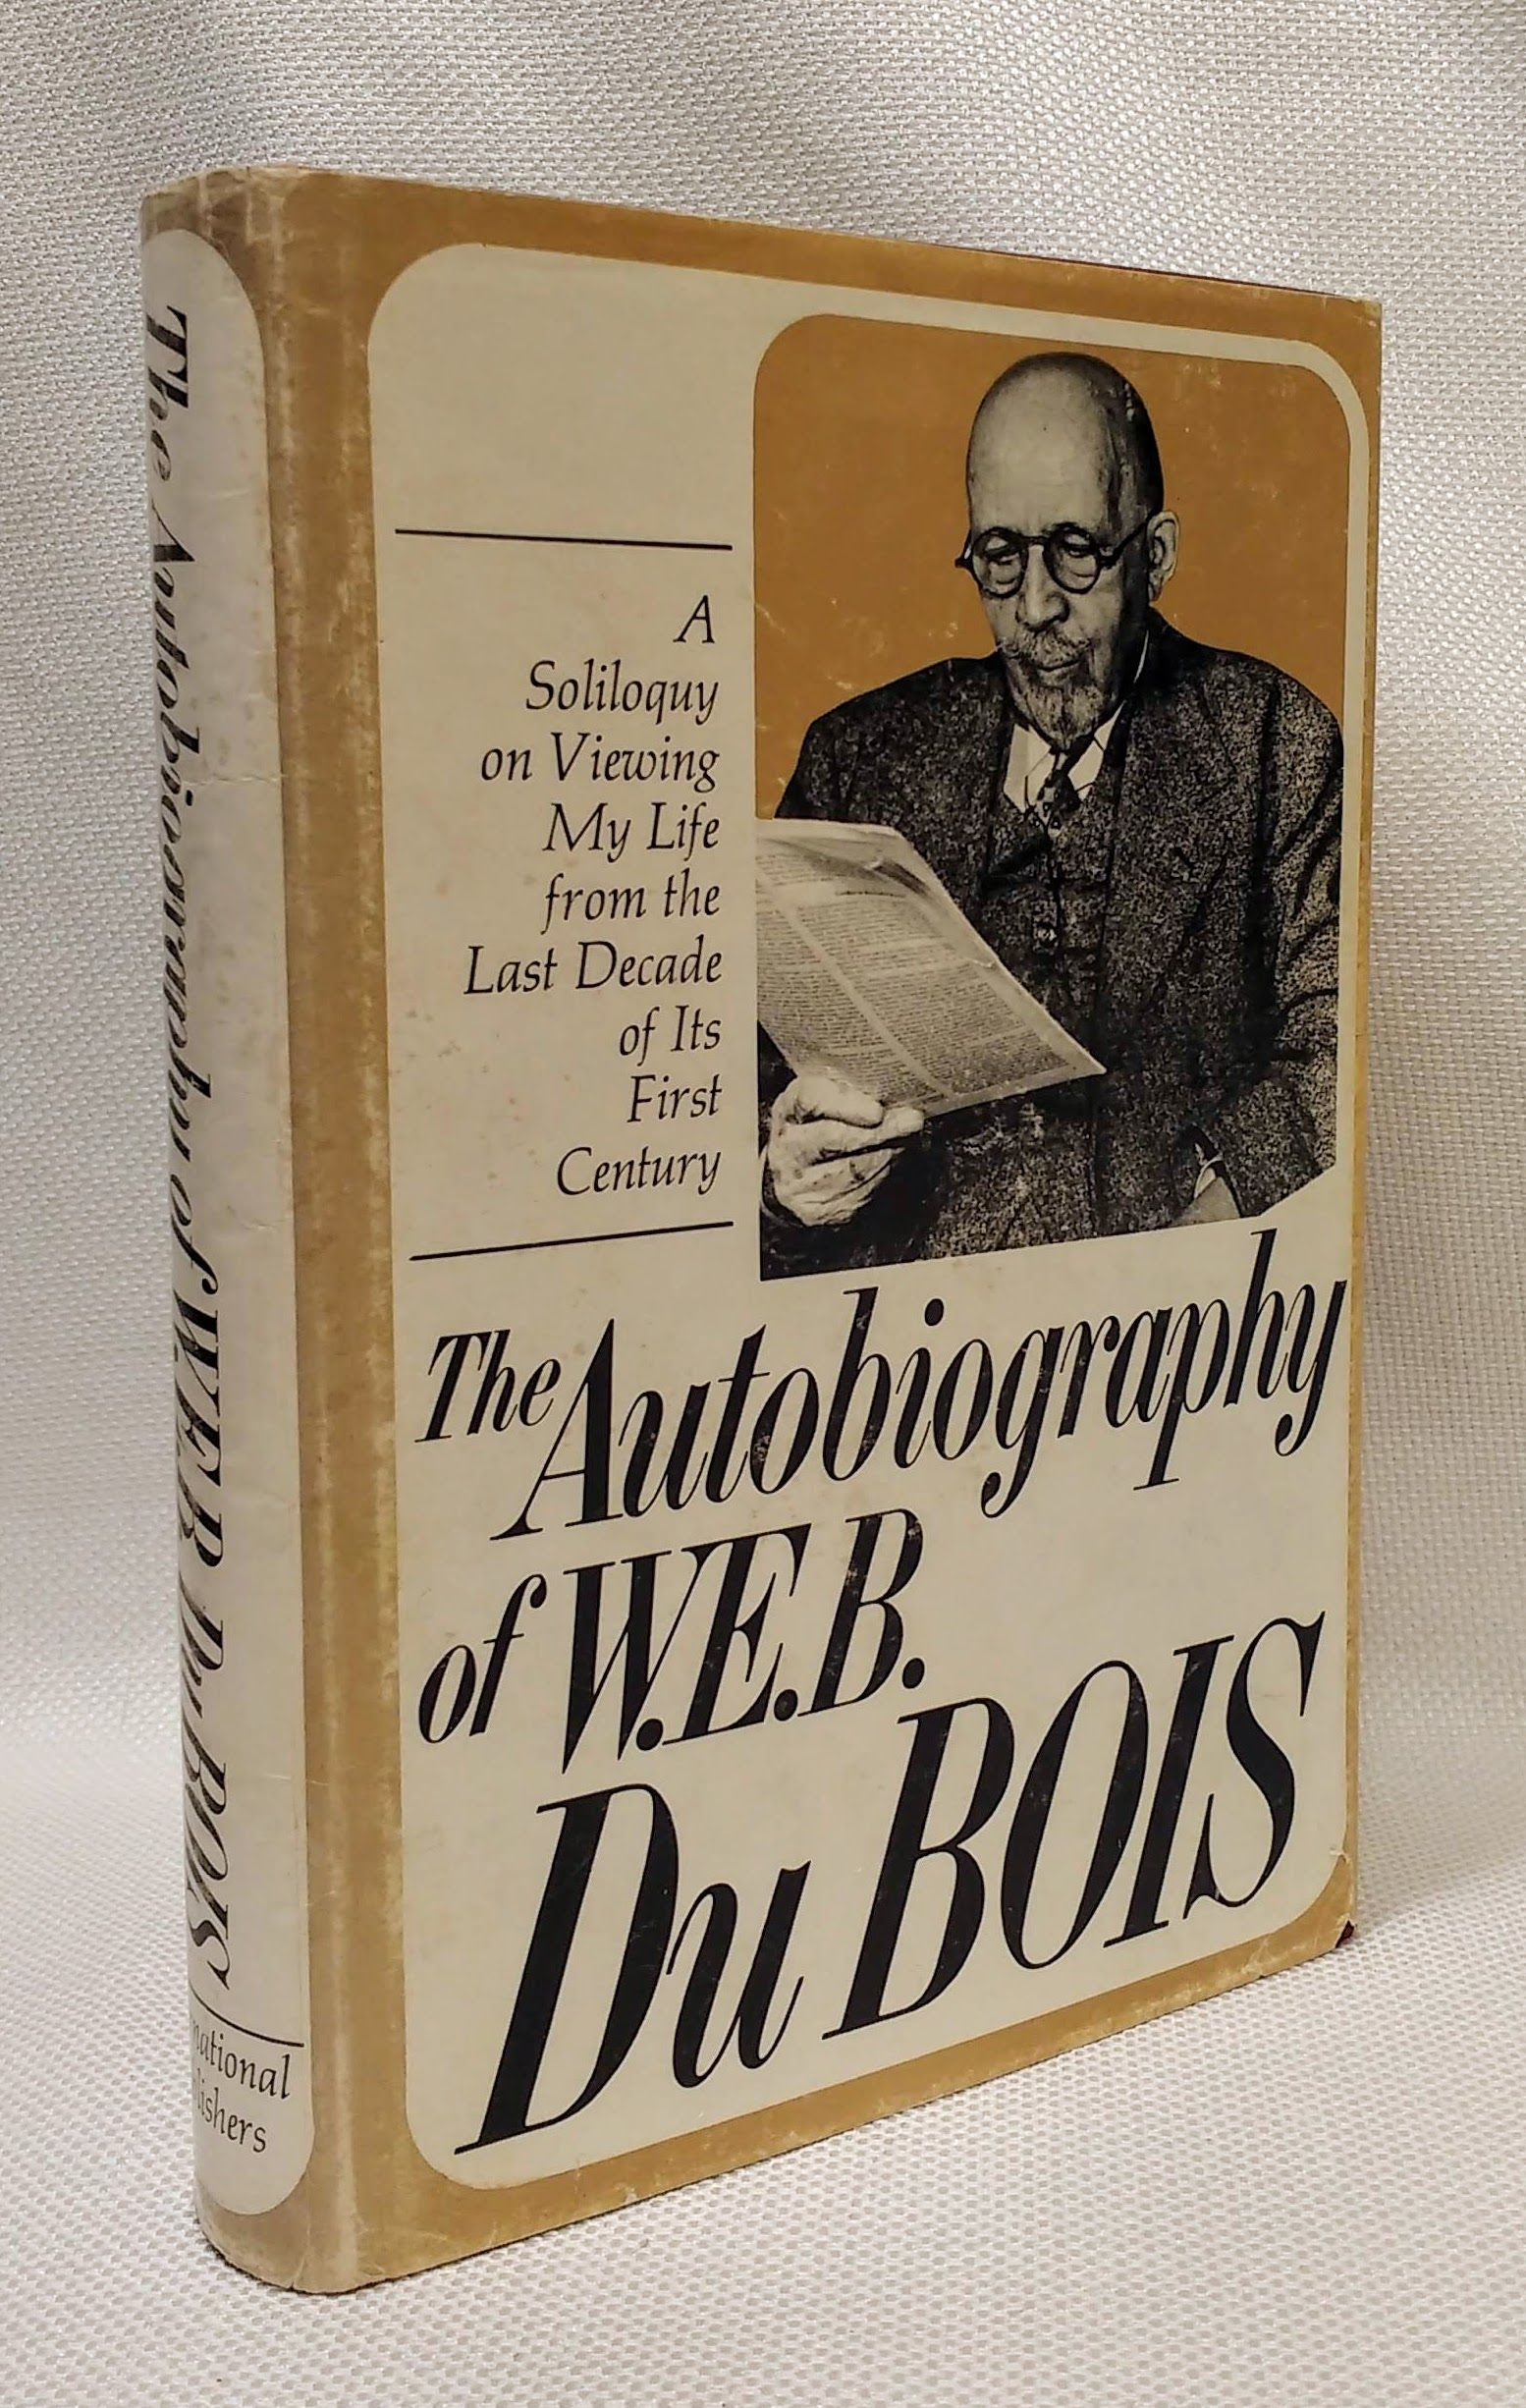 The Autobiography of W. E. B. Du Bois: A Soliloquy on Viewing My Life from the Last Decade of its First Century, Du Bois, W. E. B.